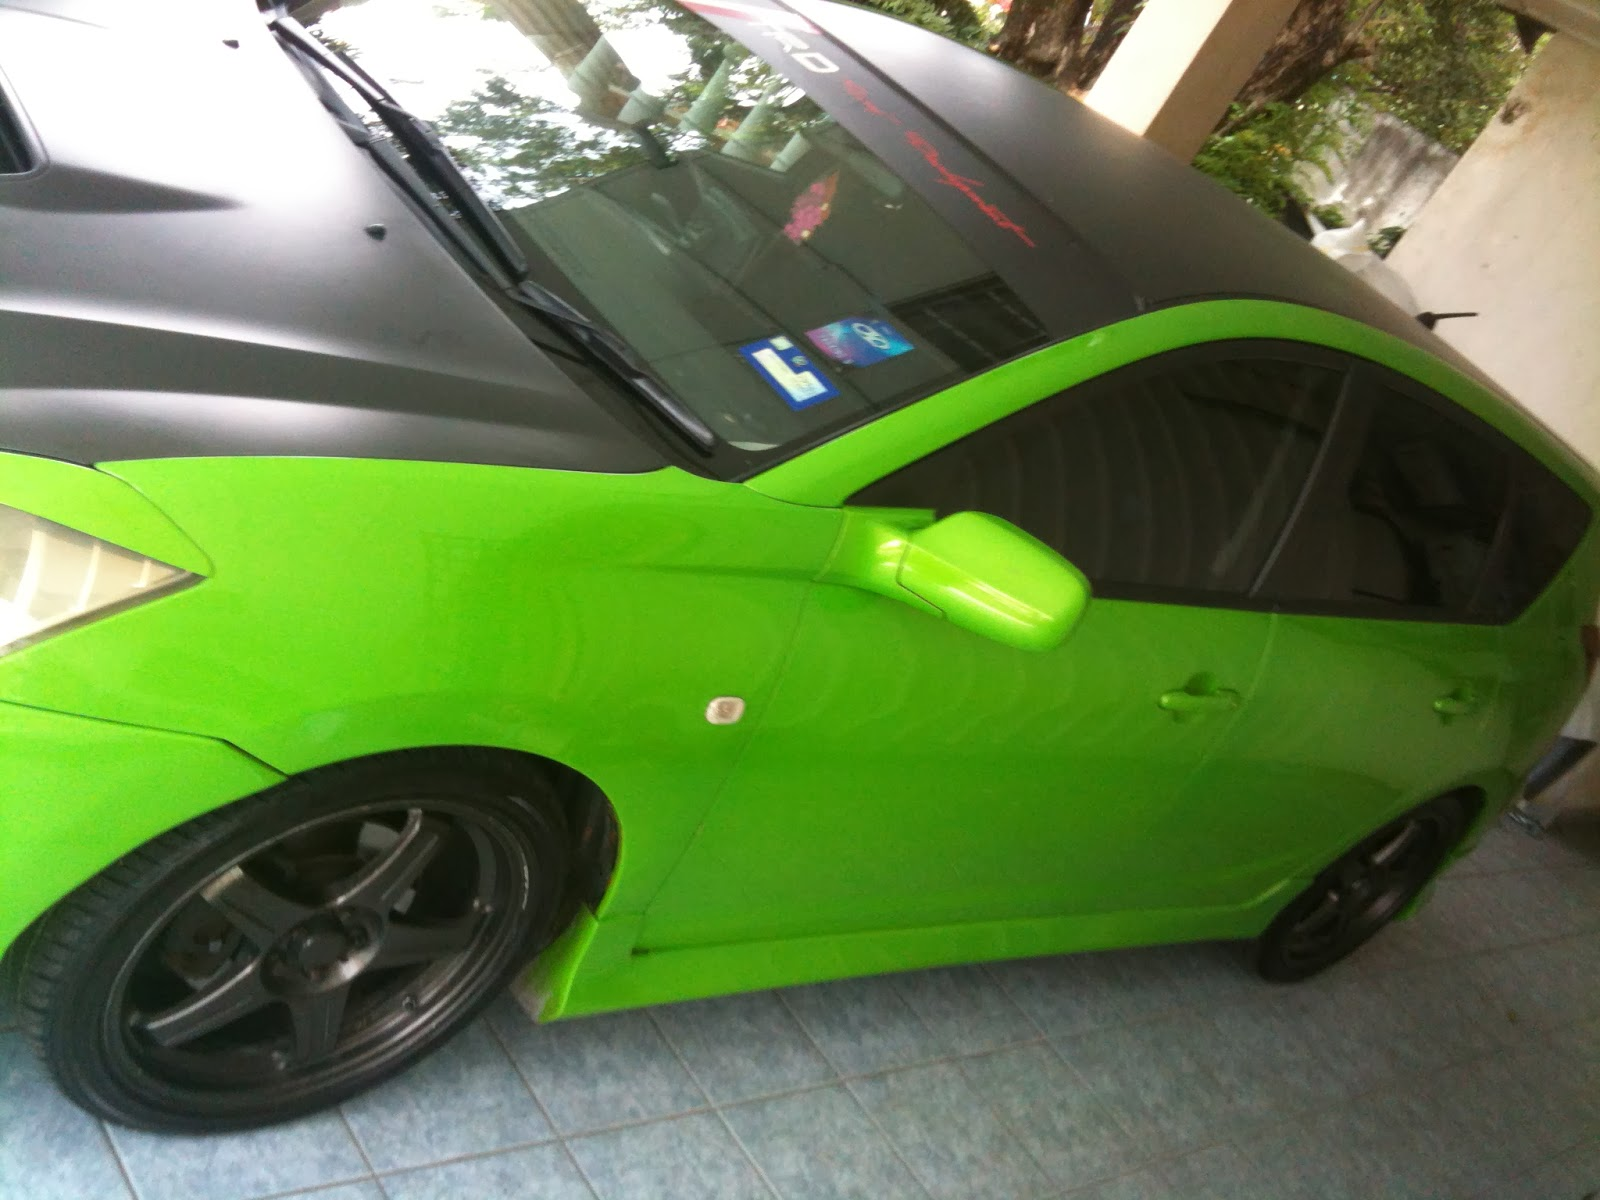 2003/2008 TOYOTA CALDINA GT4 LIMITED EDITION MANUAL TRANSMISSION FOR  CONTINUE LOAN - MONTHLY RM1200